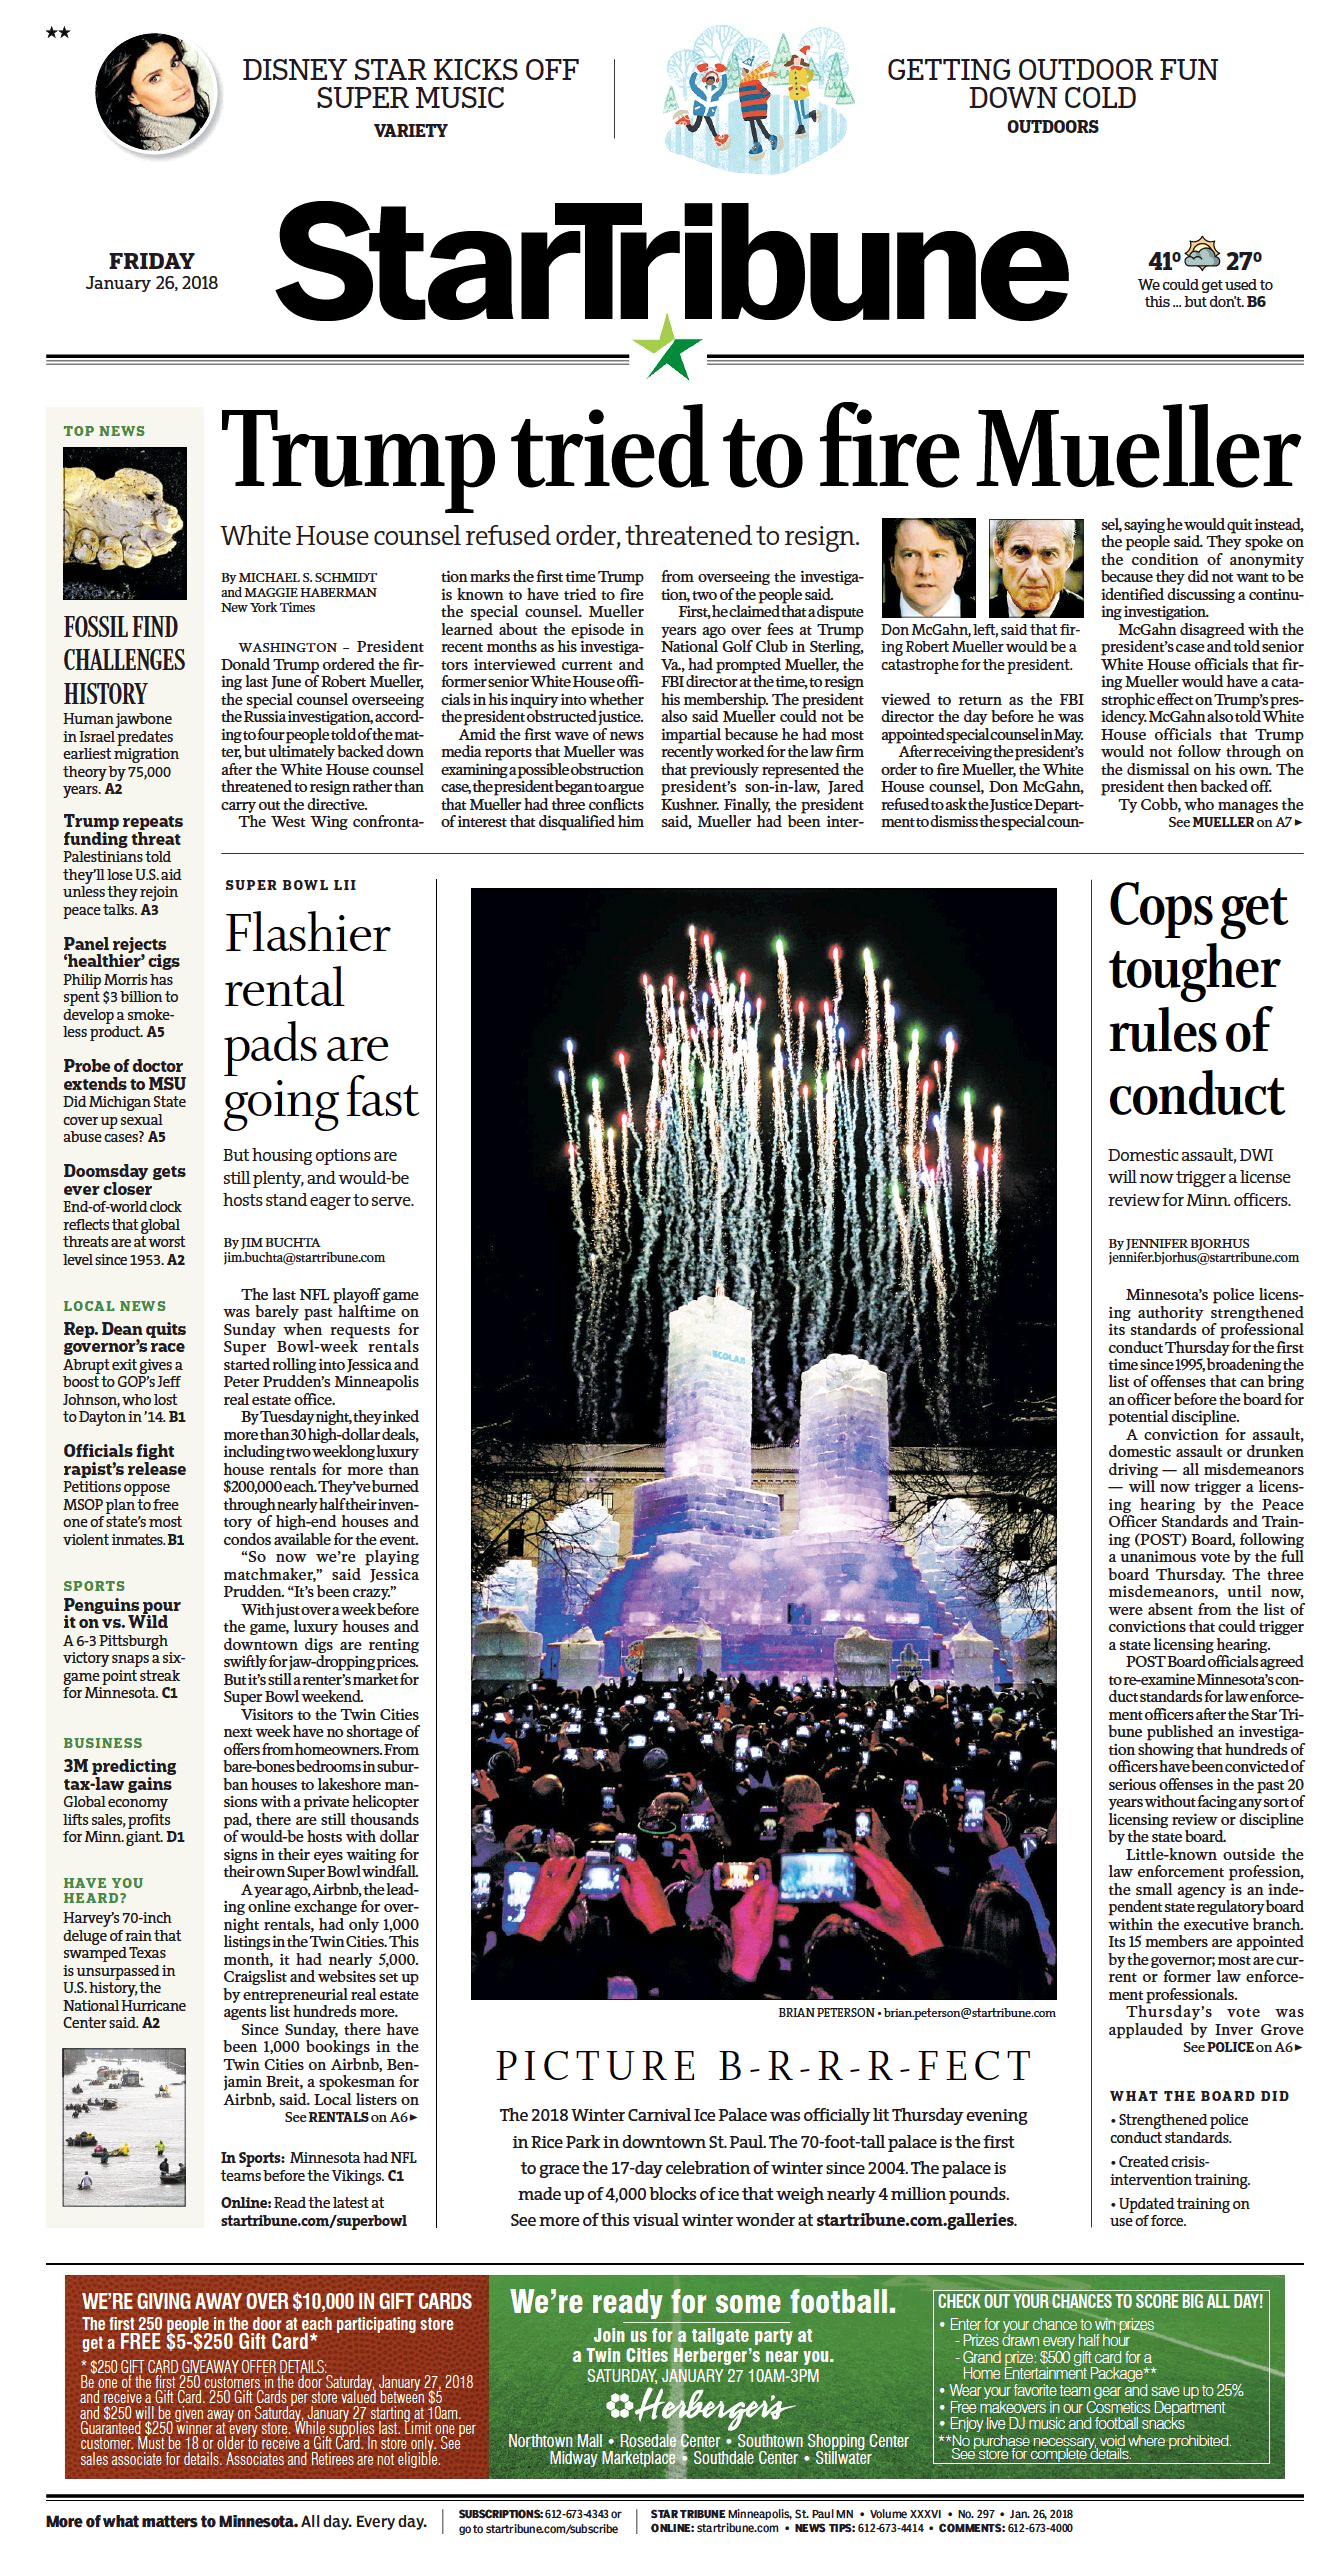 1.26.18 Winter Carnival Ice Palace Star Tribune A1 Full Page.png